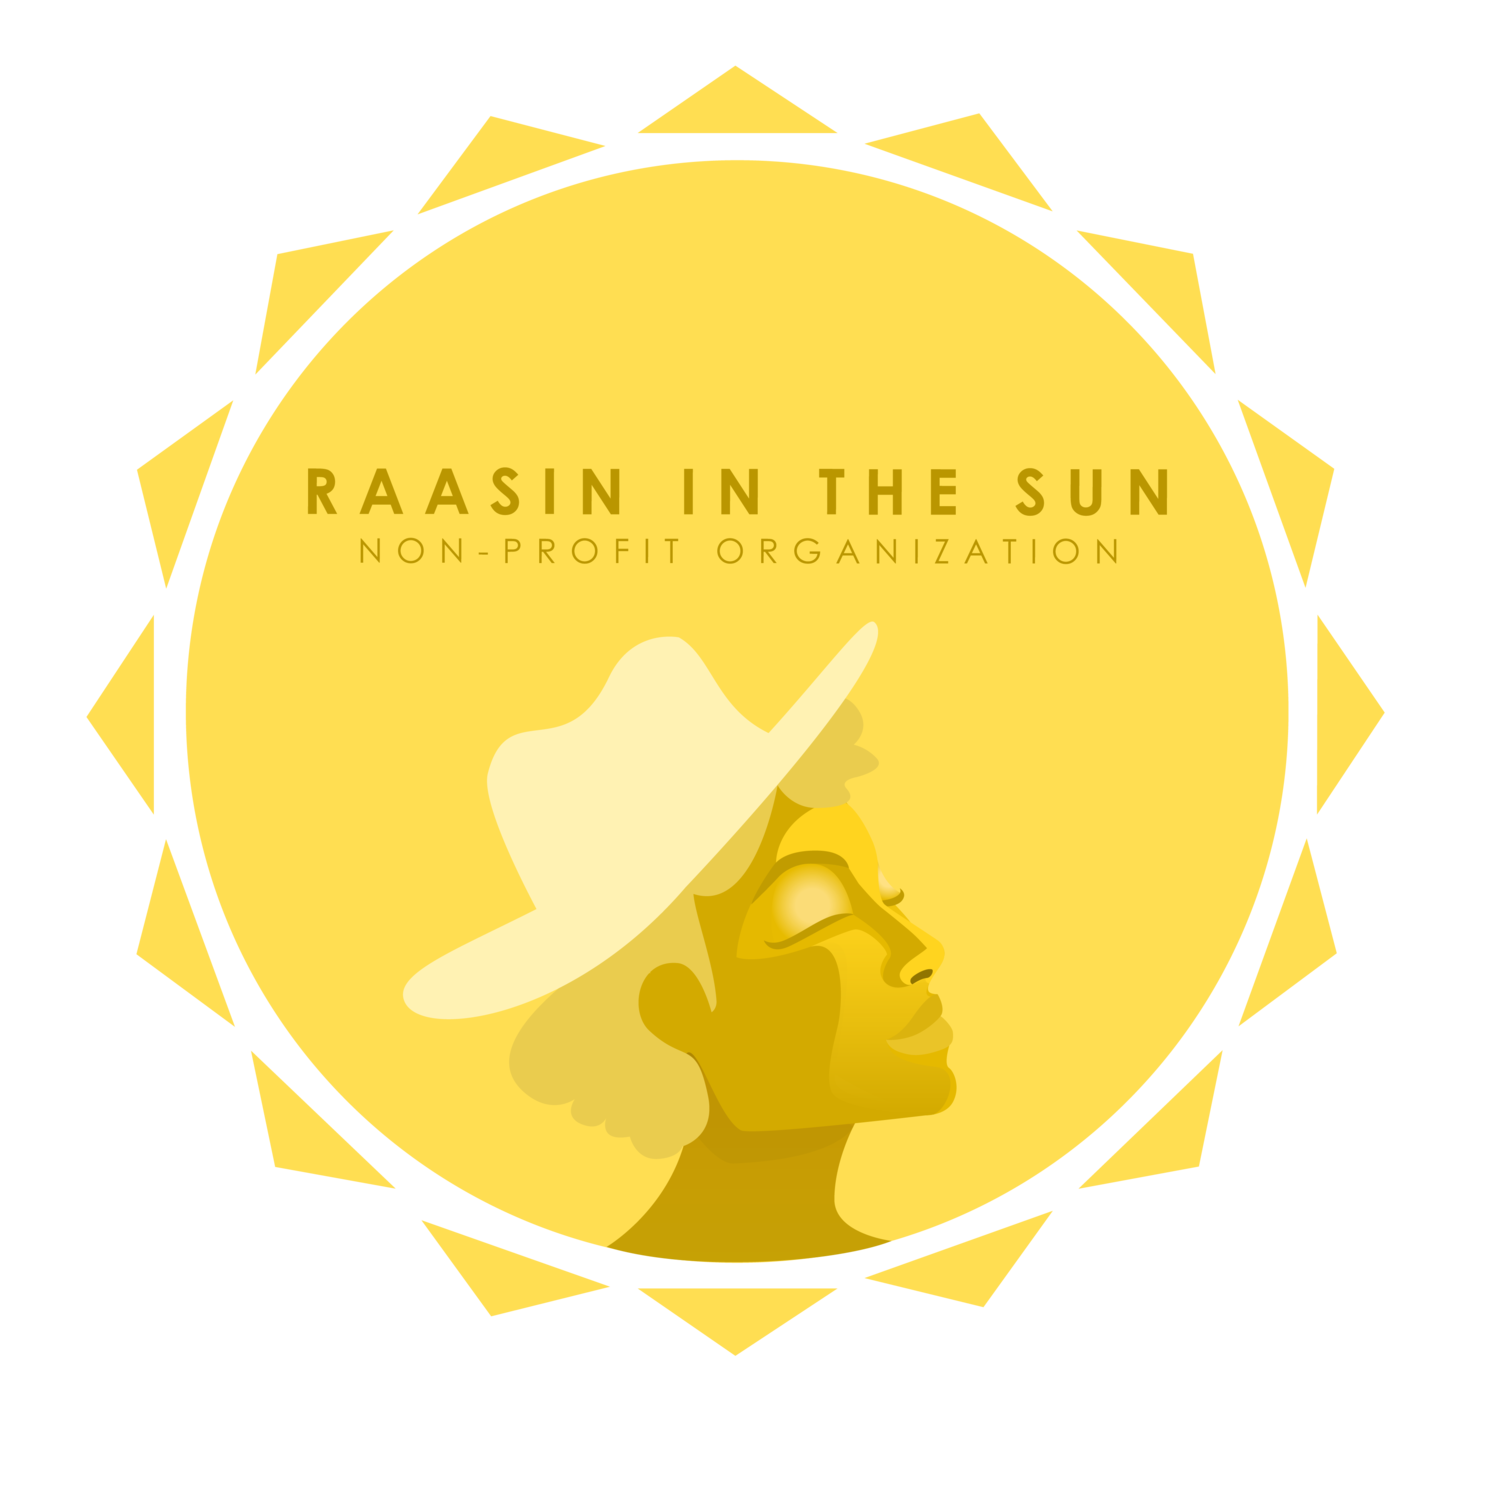 Raasin in the sun